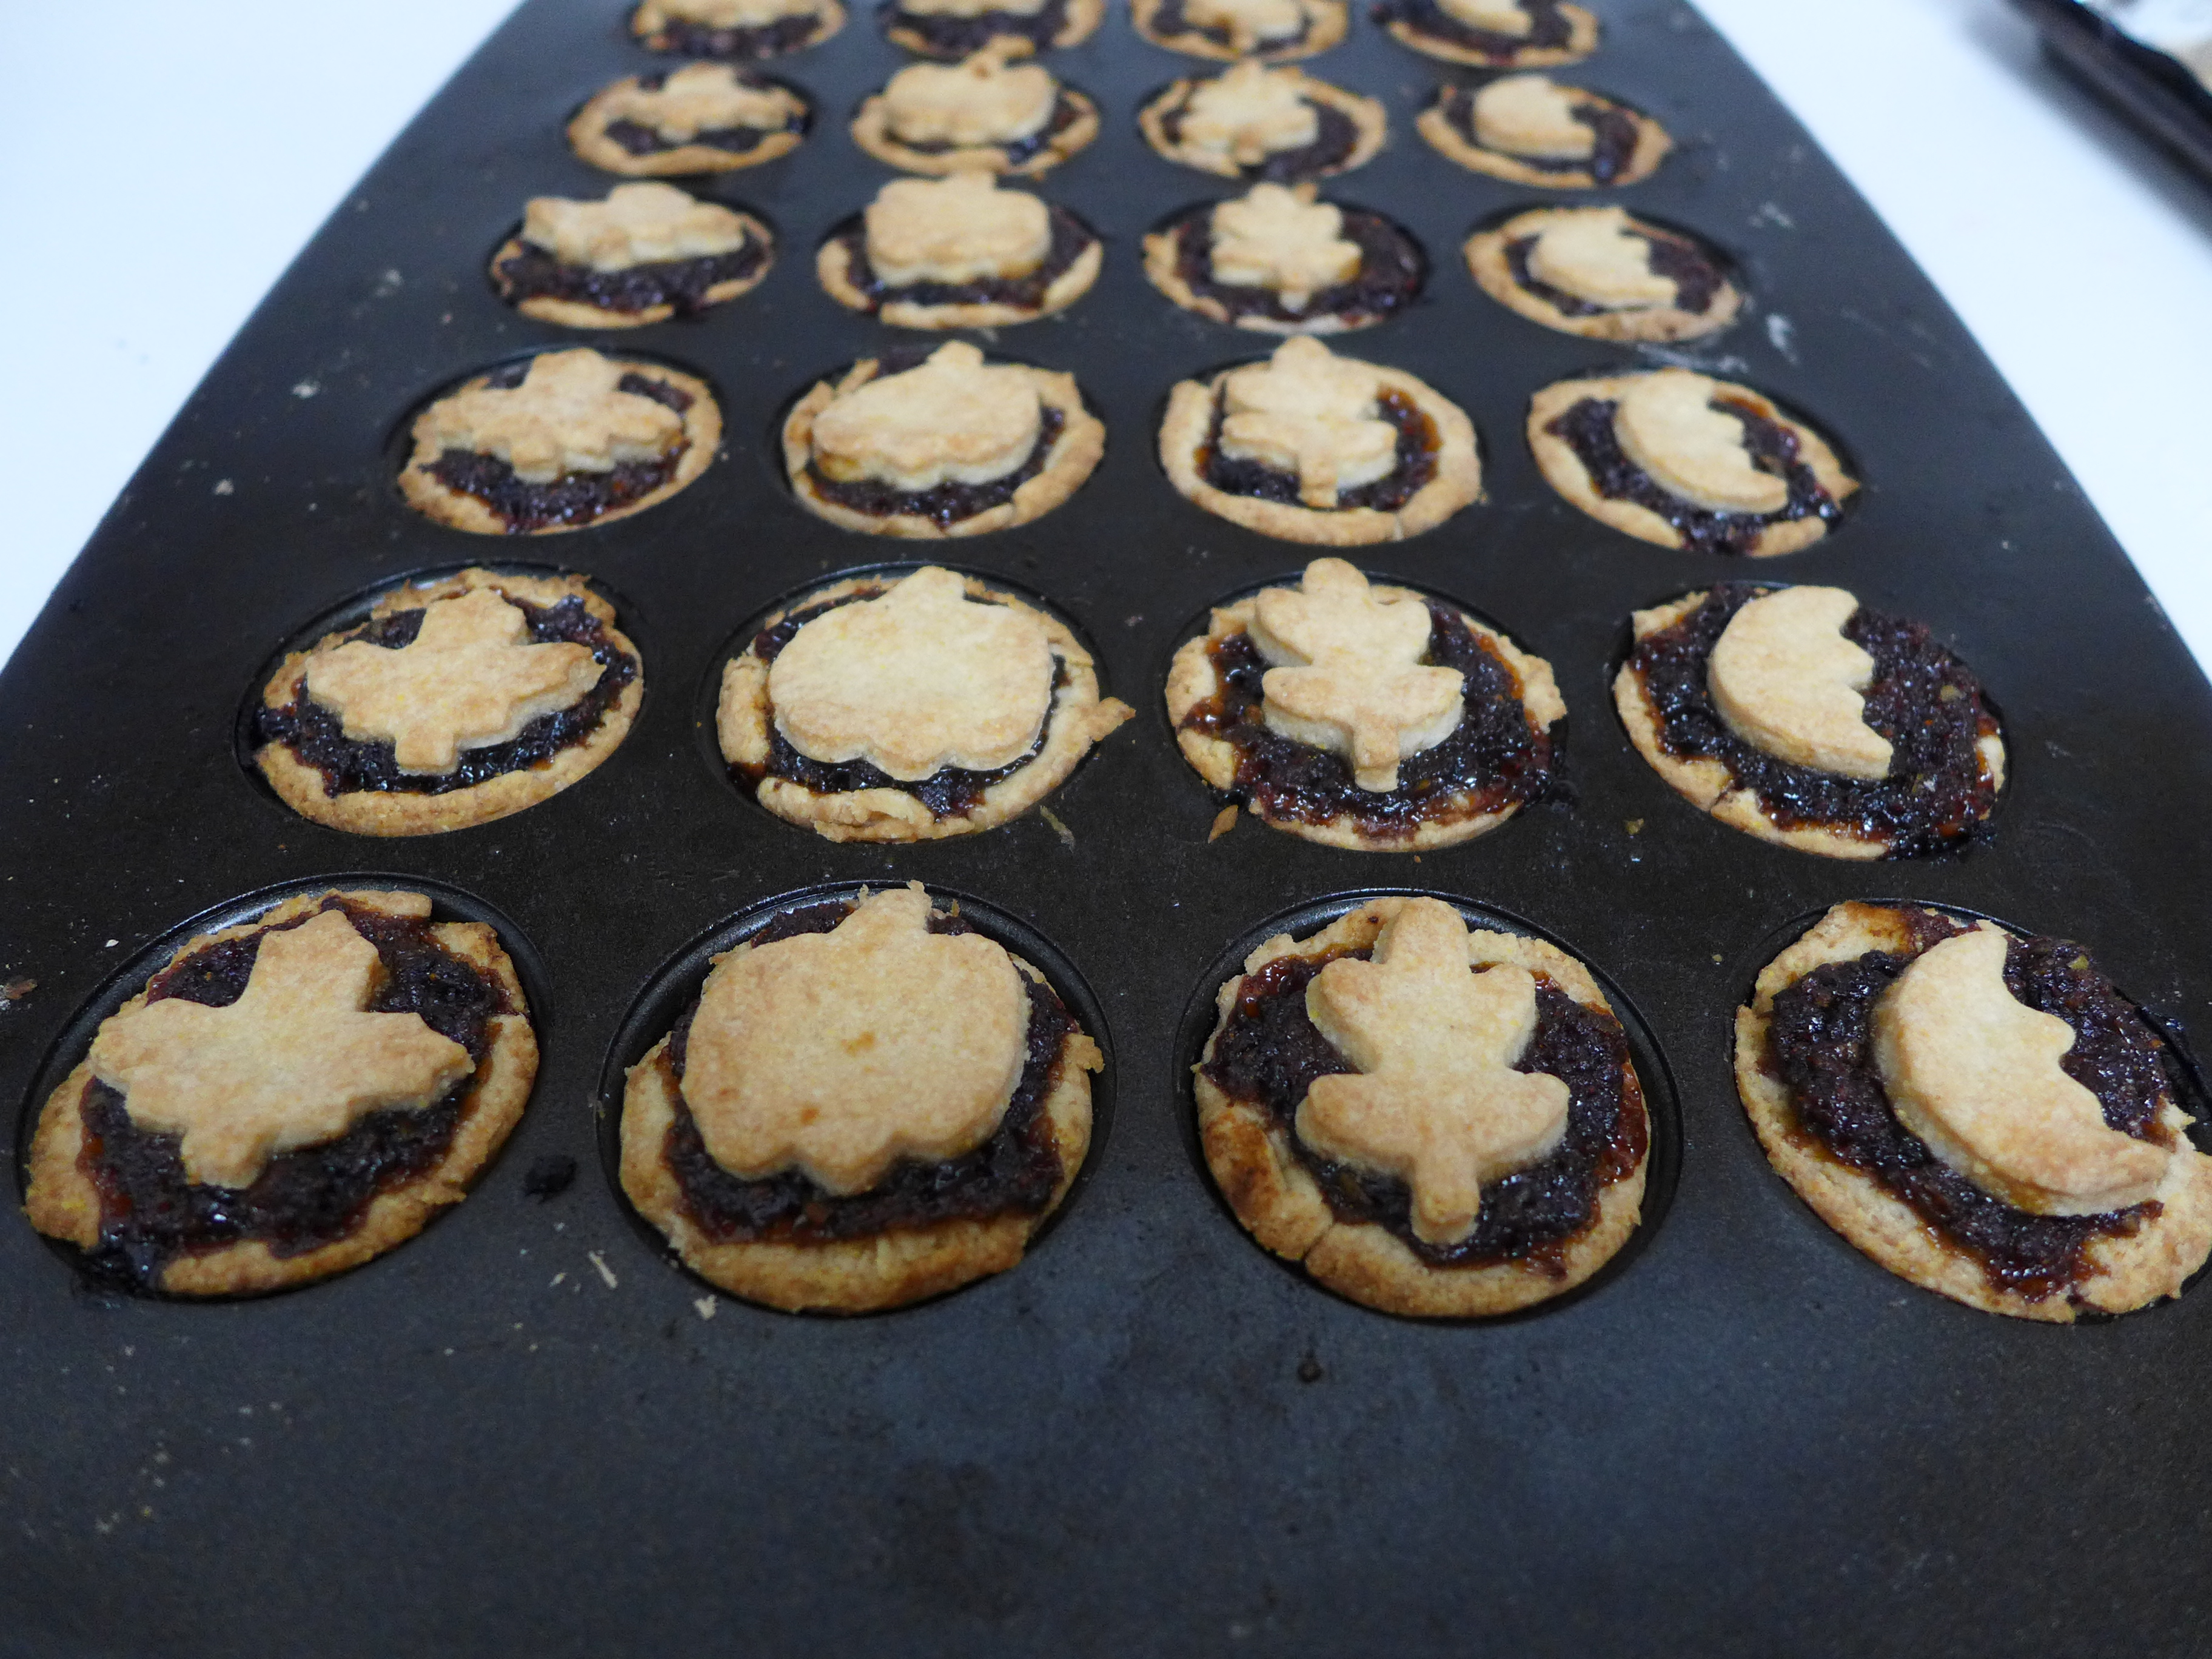 Kitchen Overlord Hobbit Week - Small Adventure Mincemeat Pies Instructions